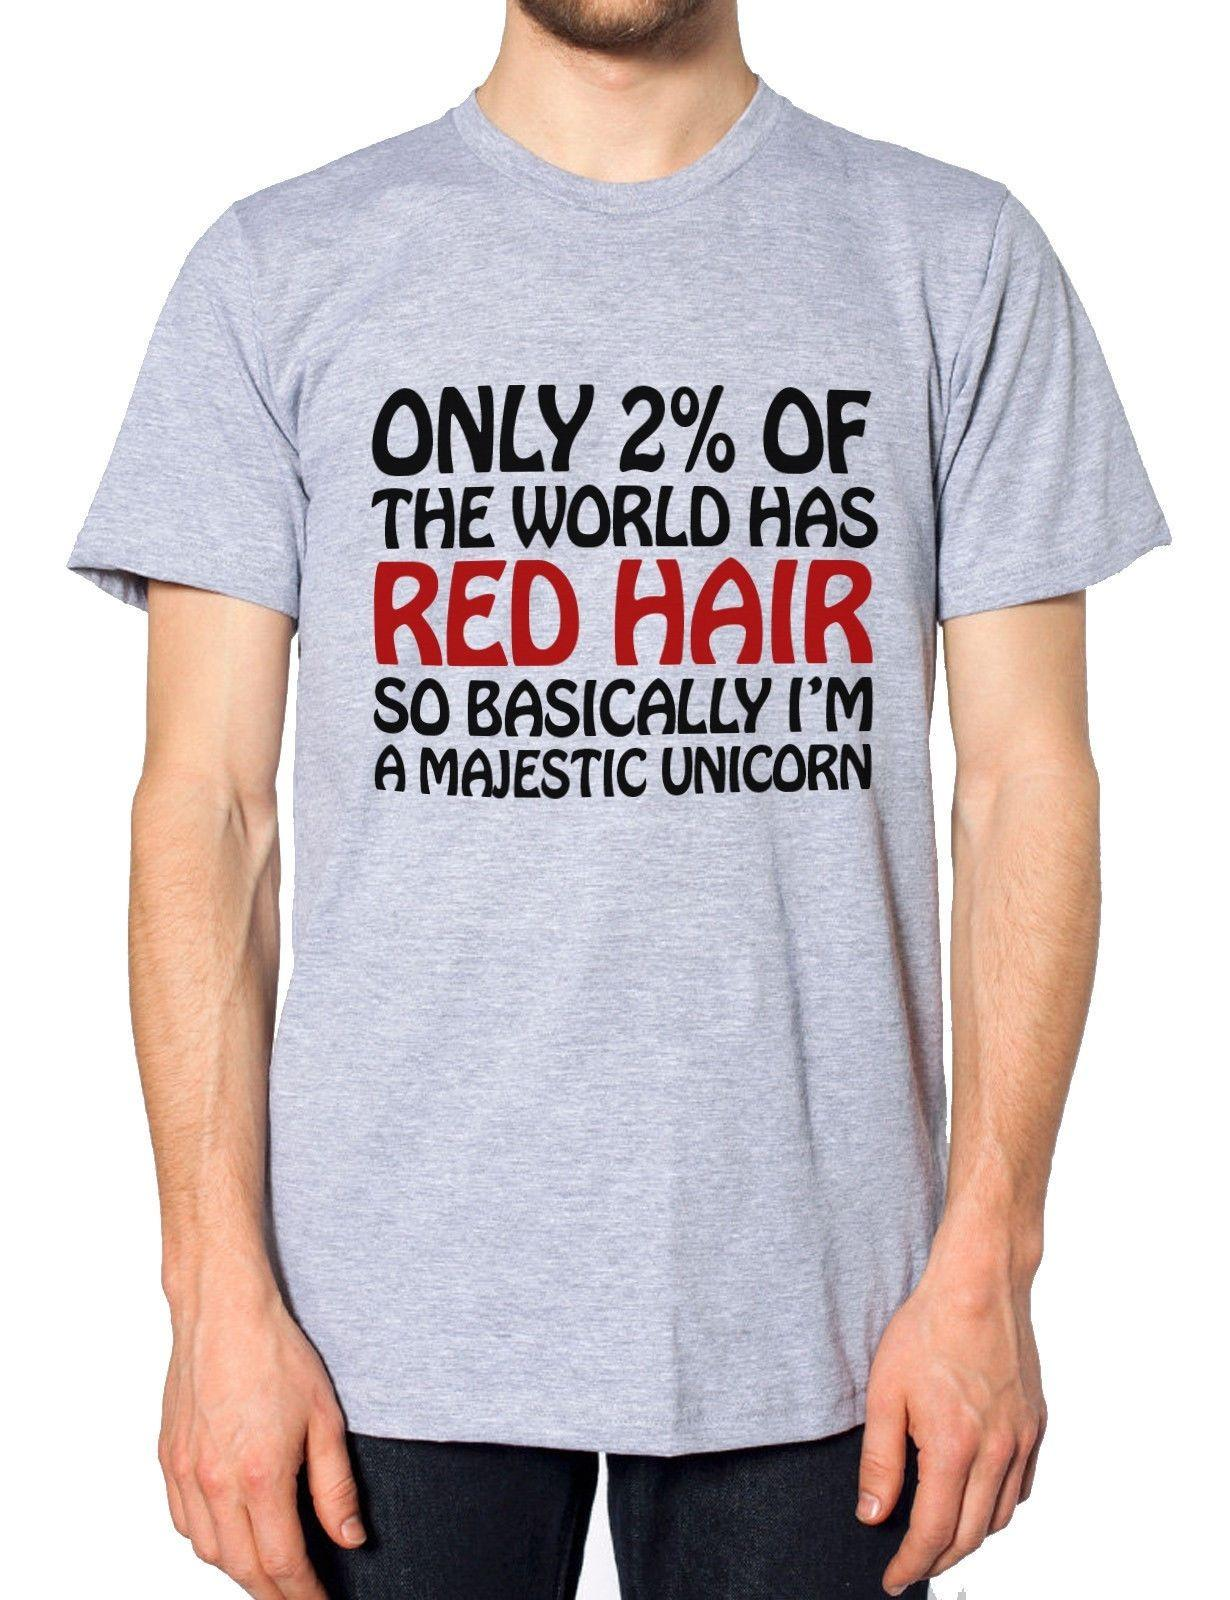 30b10500e3 Only 2% World Red Hair Unicorn Funny Hipster T Shirt Men Women Tshirt Ginger  Cool Casual Pride T Shirt Men Unisex Cotton Shirts White T Shirts From ...